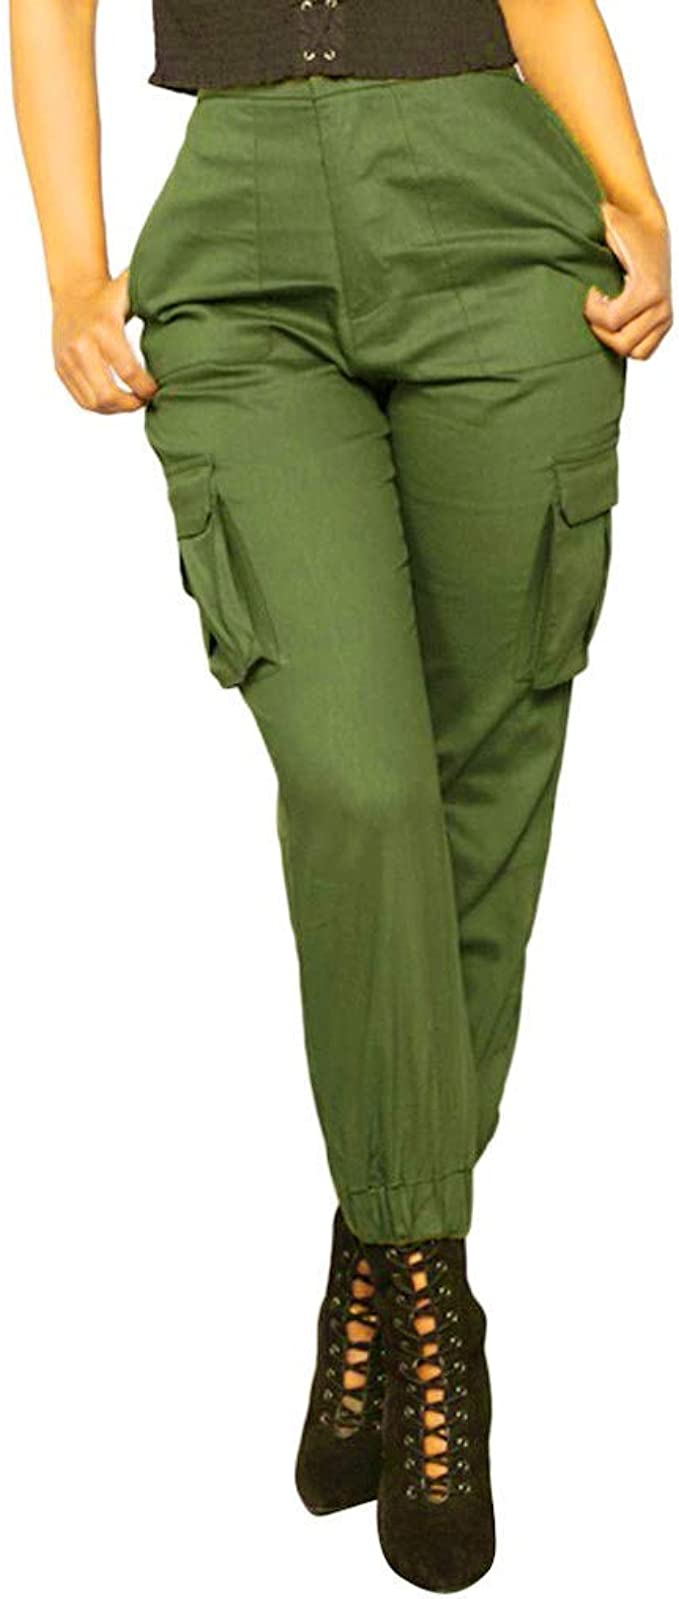 Ladies Cargo Combat Stretch Casual Pants Trousers Womens Slim Fit Sport Joggers